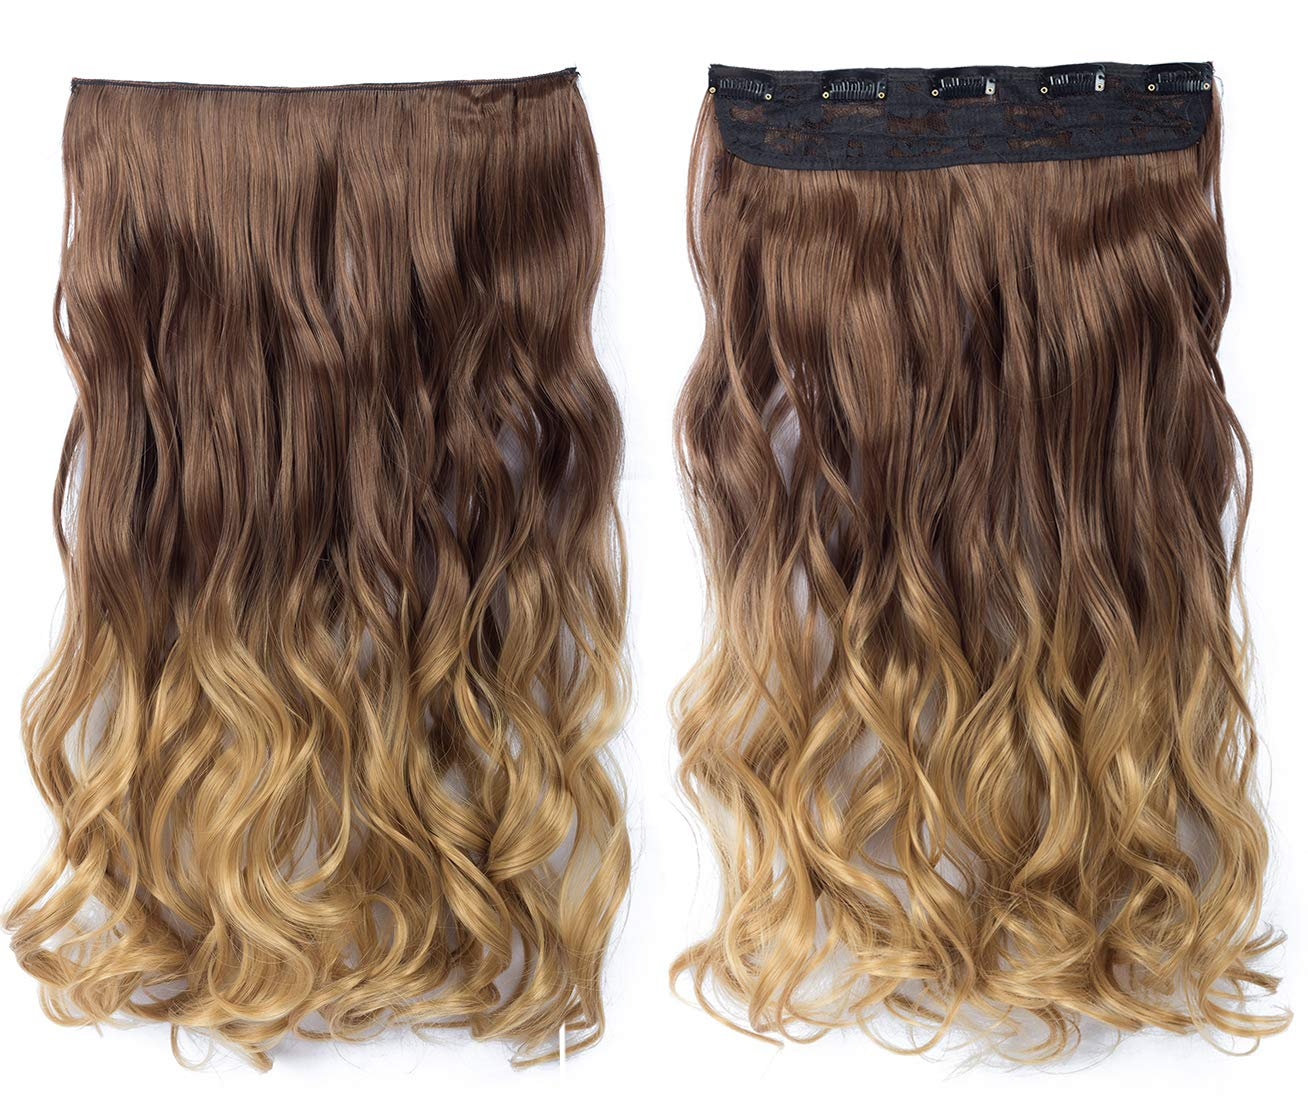 8t27 Beautyself Hair Extensions Ombre Clip In Curly One Piece On Short Hair 8t27 Amazon In Beauty